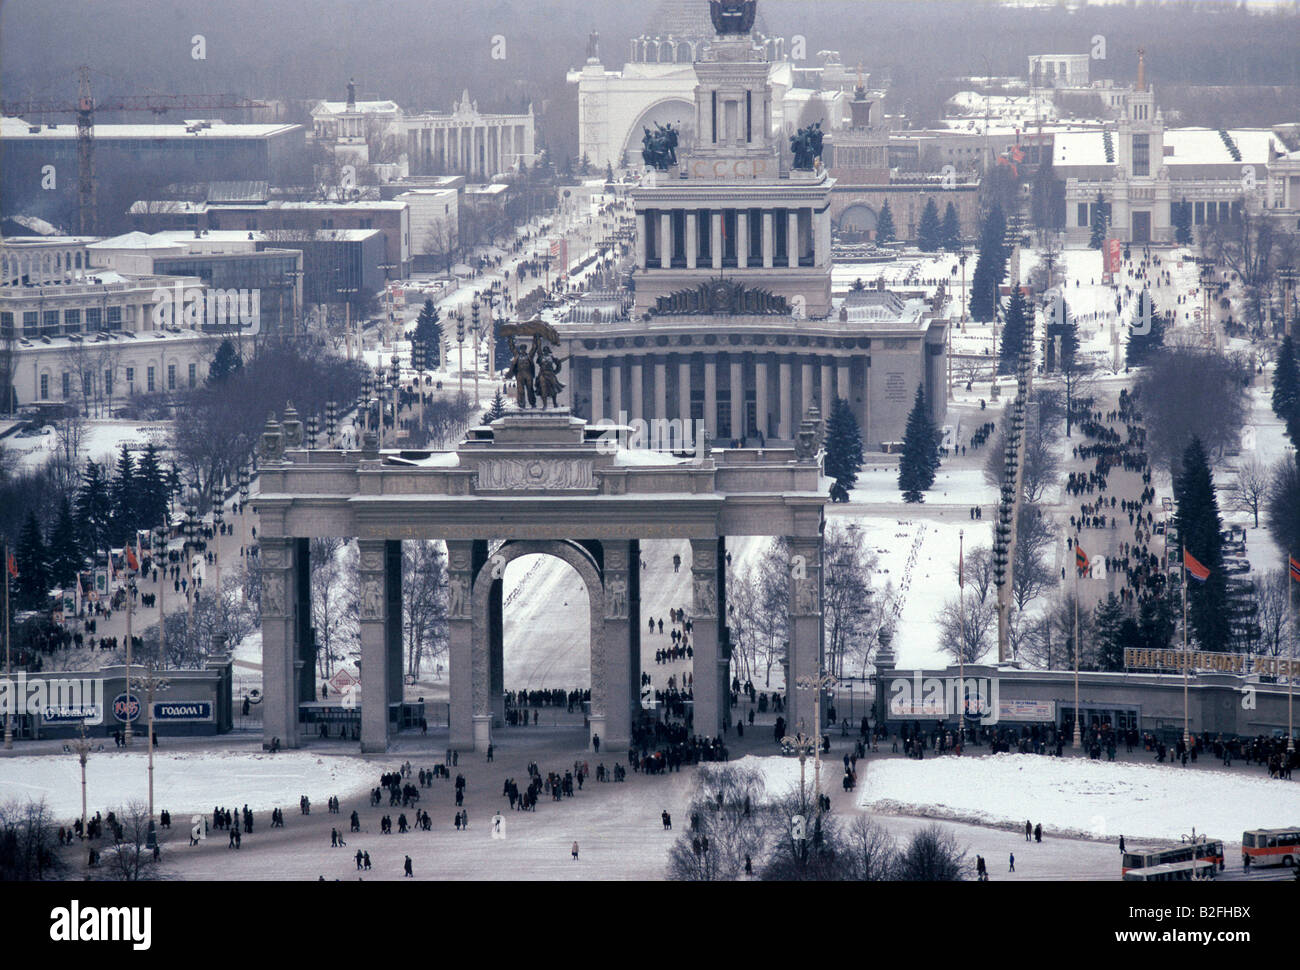 the moscow triumphal arch covered in snow, victory square, taken from above - Stock Image